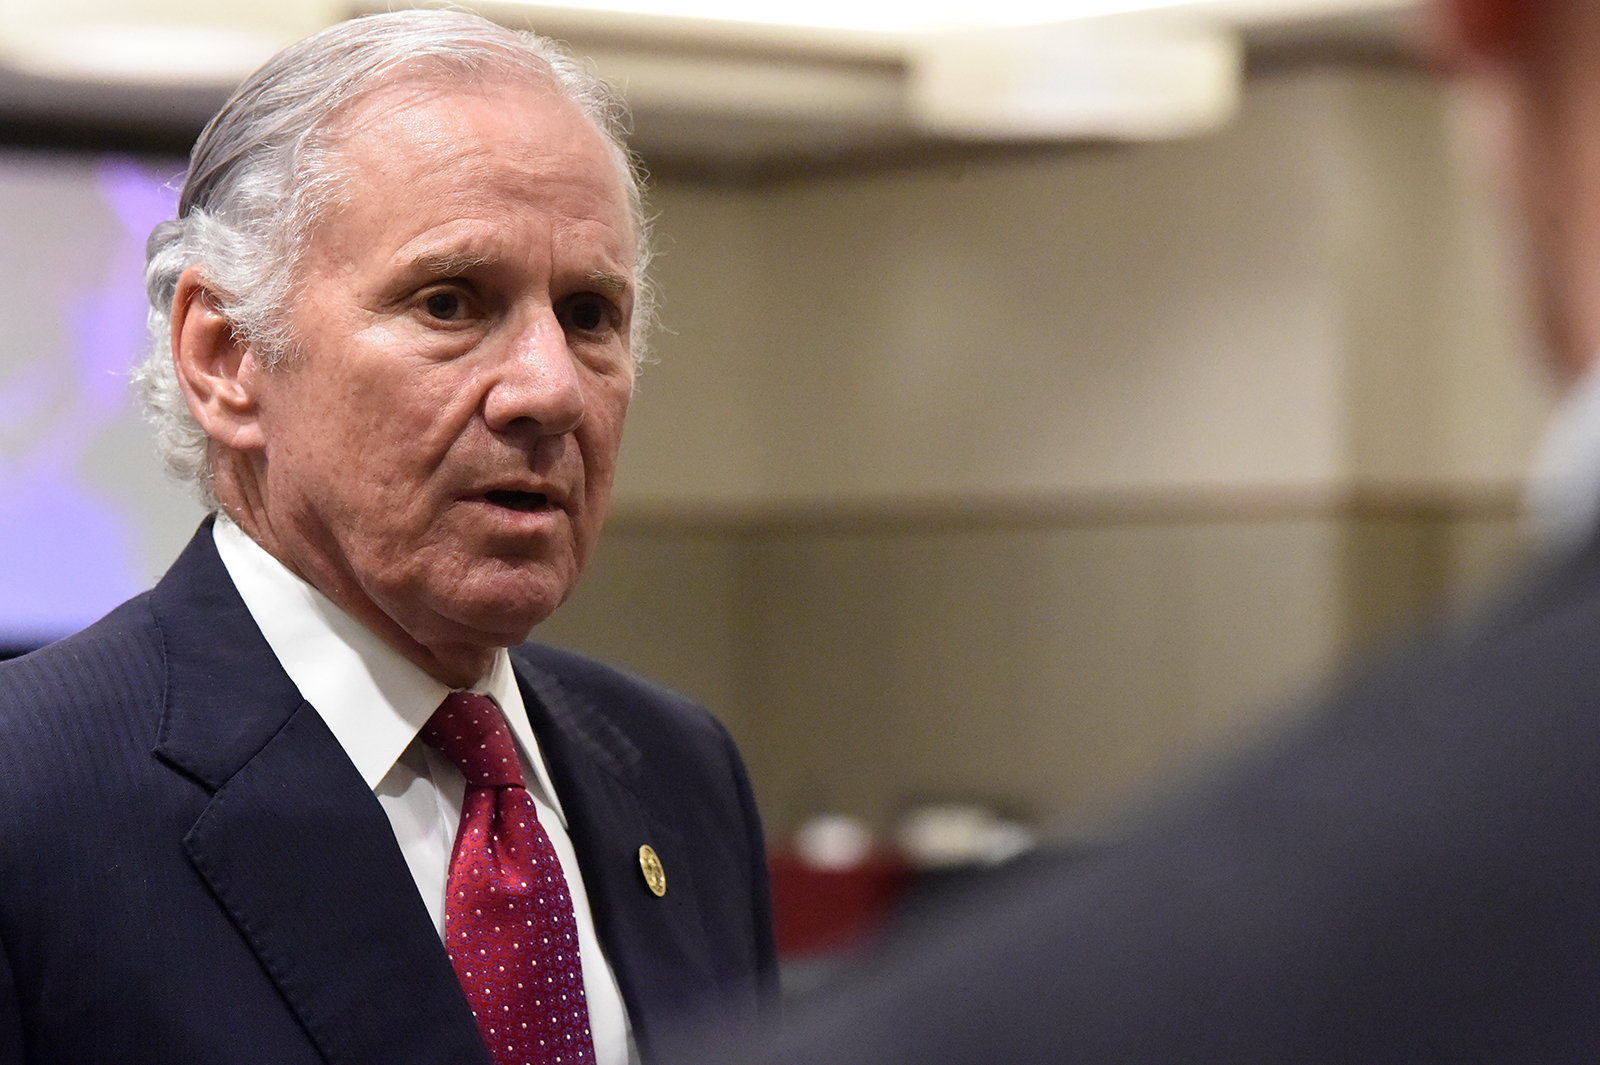 In this file photo, South Carolina Gov. Henry McMaster speaks with reporters in Columbia, South Carolina on April 23.